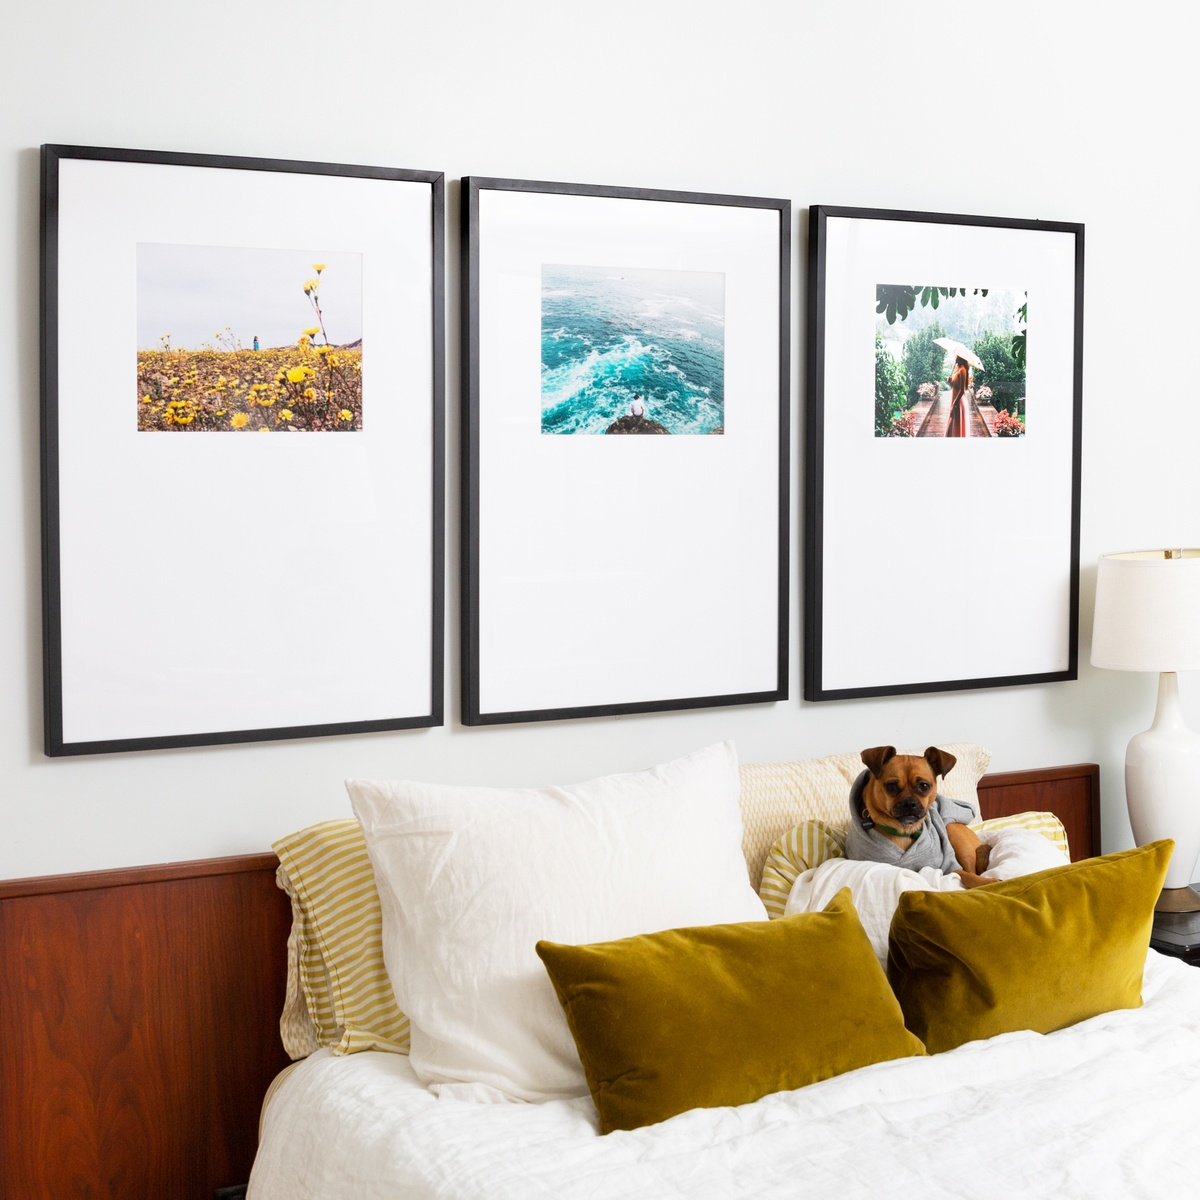 small dog on pillows under triptych frames